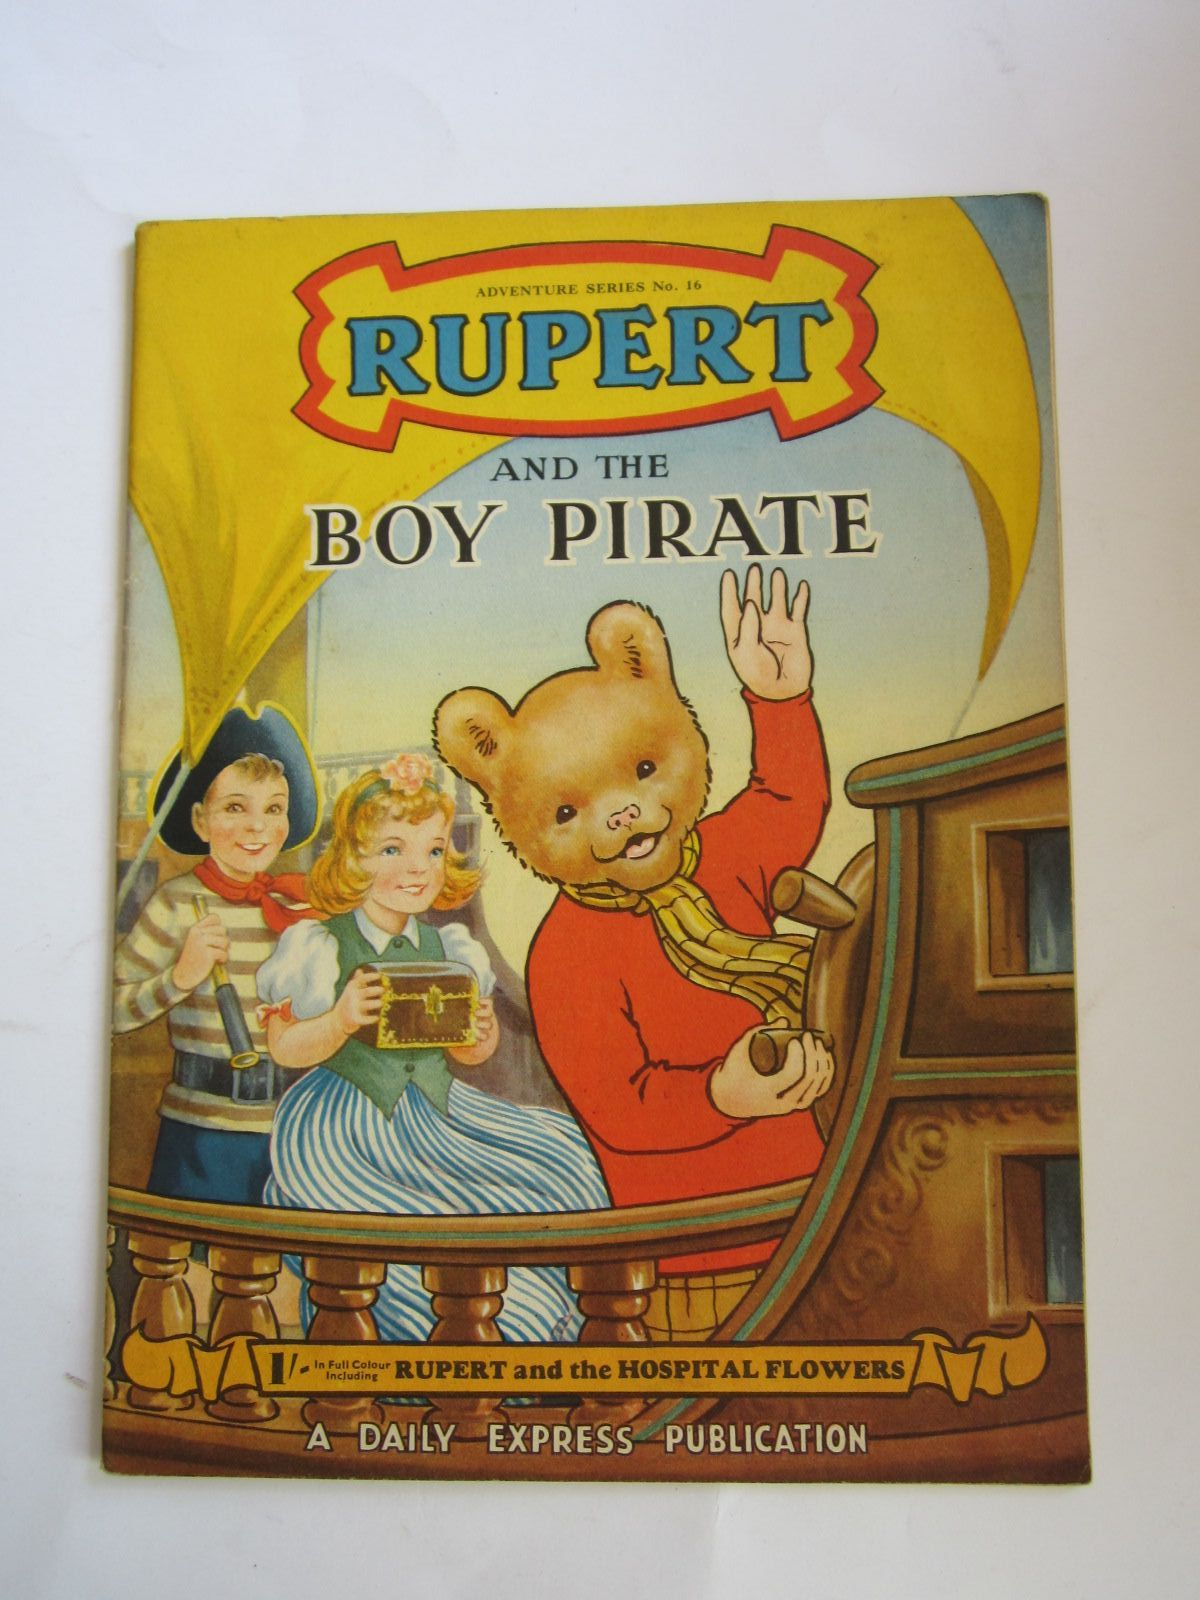 Photo of RUPERT ADVENTURE SERIES No. 16 - RUPERT AND THE BOY PIRATE written by Bestall, Alfred published by Daily Express (STOCK CODE: 1206518)  for sale by Stella & Rose's Books